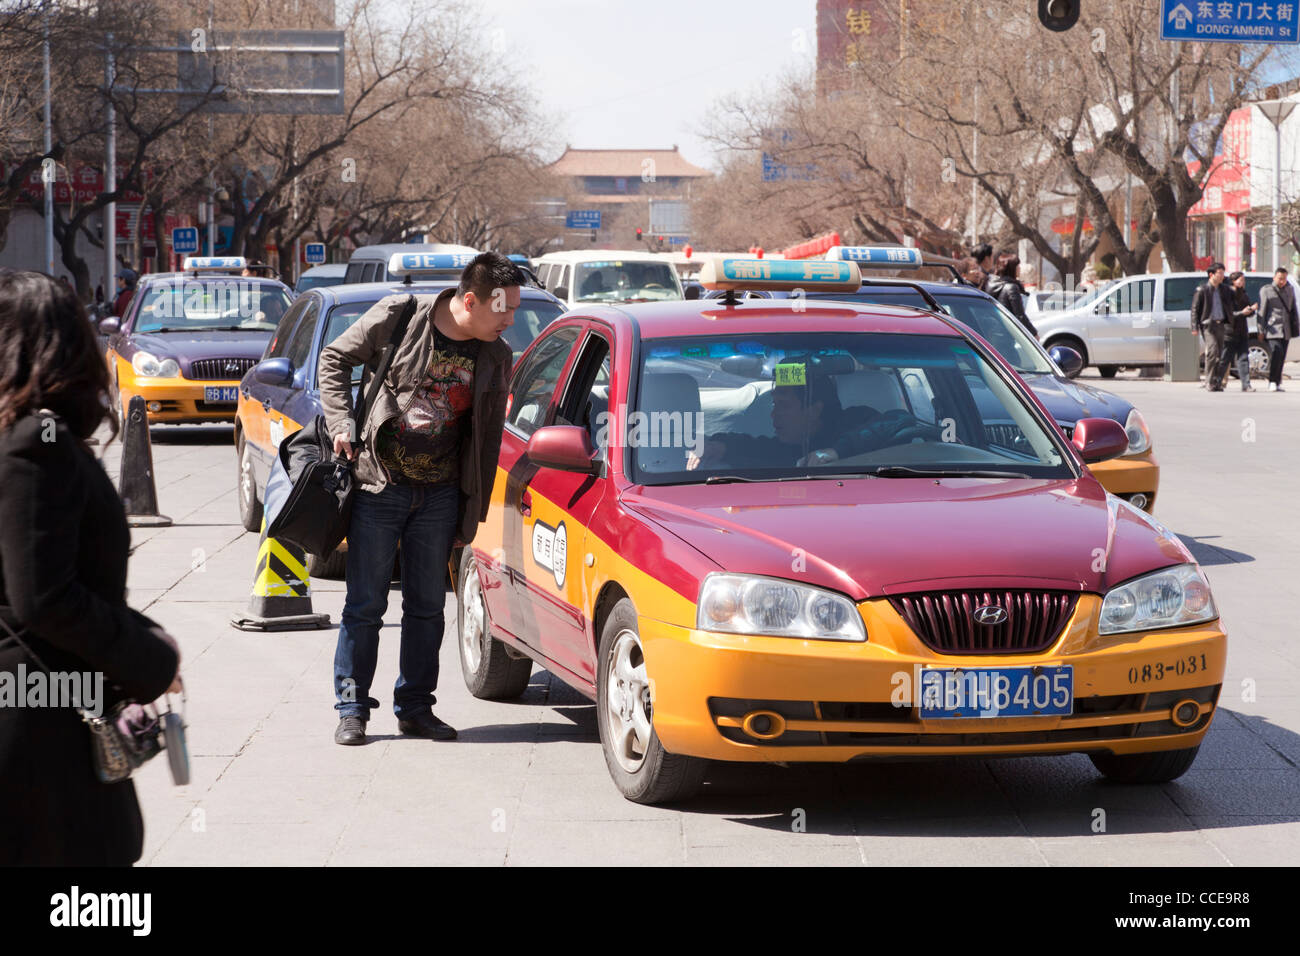 A man talking to the driver of a taxi on the streets of Beijing, China - Stock Image